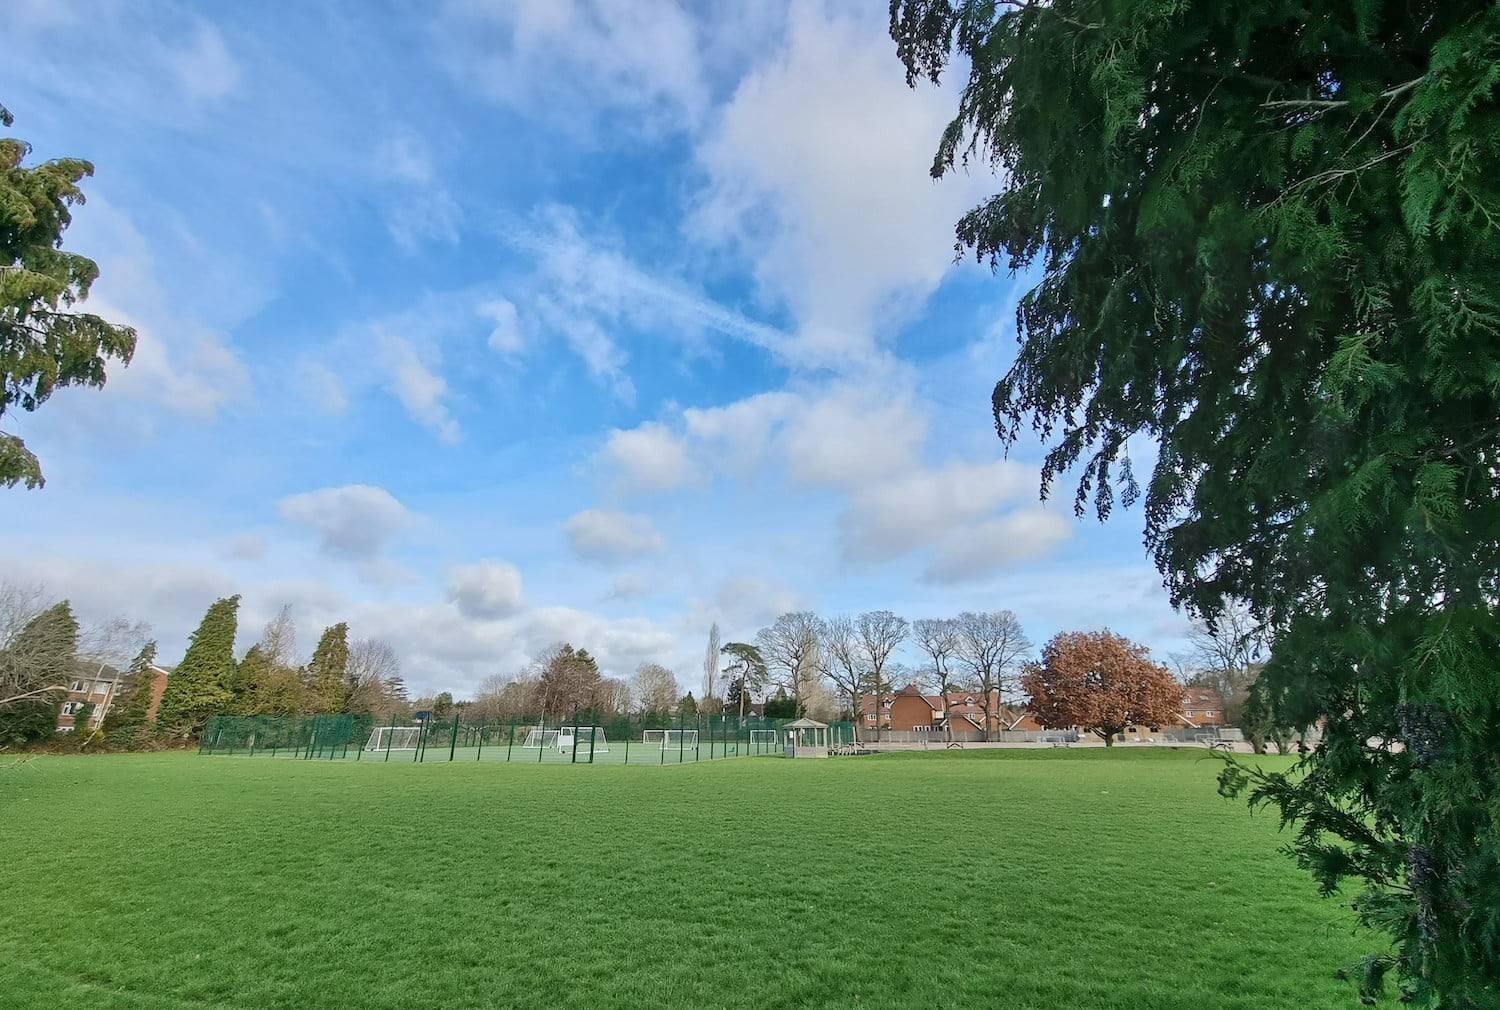 samsung galaxy s21 ultra review wide field